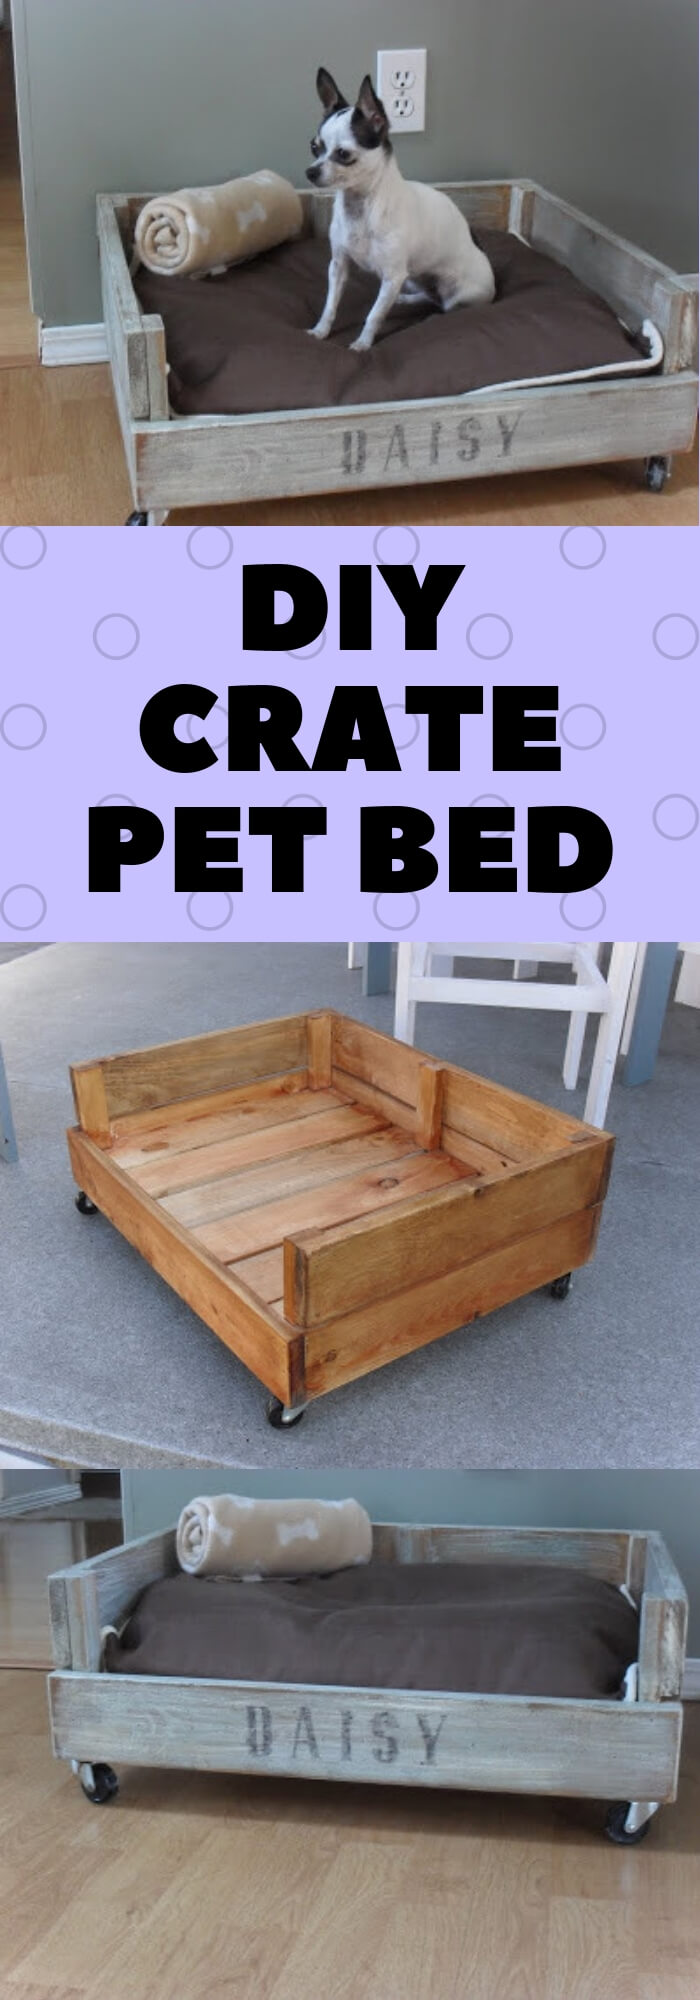 DIY Crate Pet bed | Best DIY Wood Crate Projects & Ideas